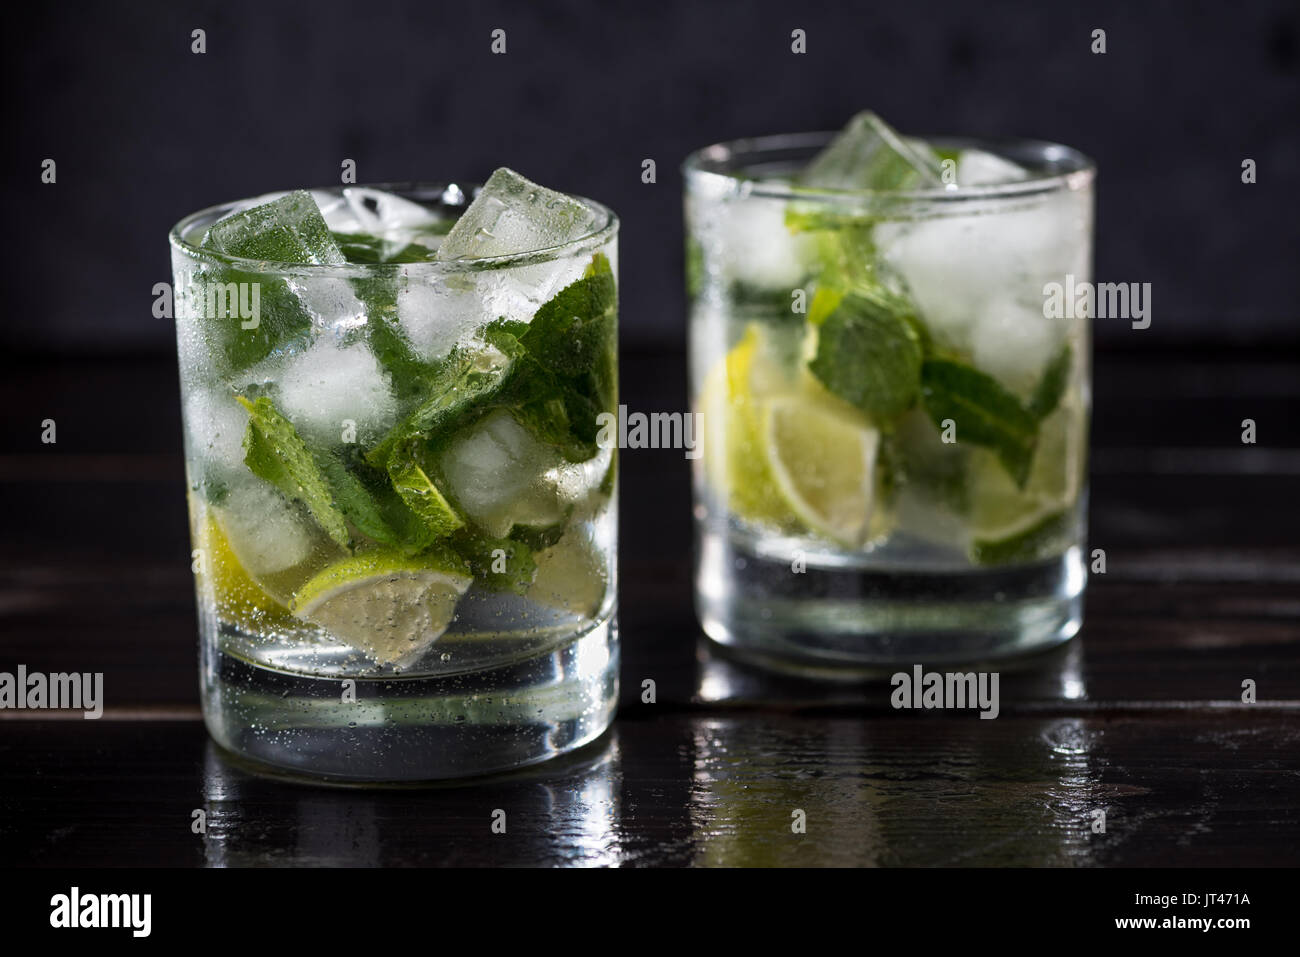 Close-up view of mojito cocktail in glasses on dark wooden table, cocktail drinks concept - Stock Image